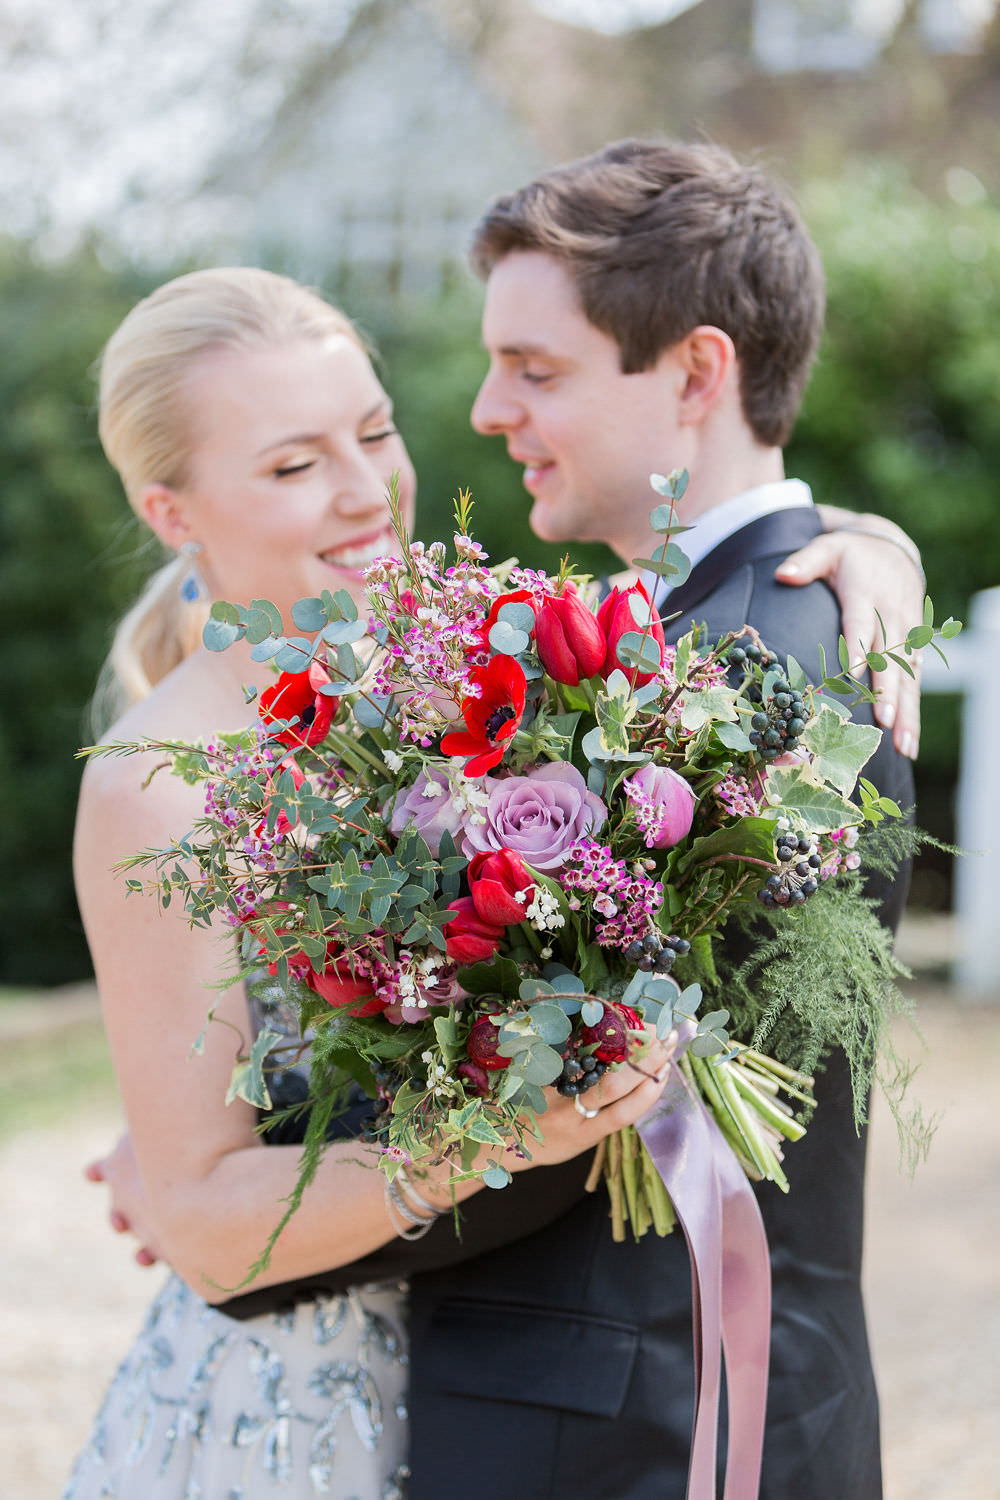 Bouquets Bride Bridal Bridesmaid Greenery Foliage Red Pink Rose Poppy Tulips Ribbons Highcliffe Castle Wedding Bowtie and Belle Photography